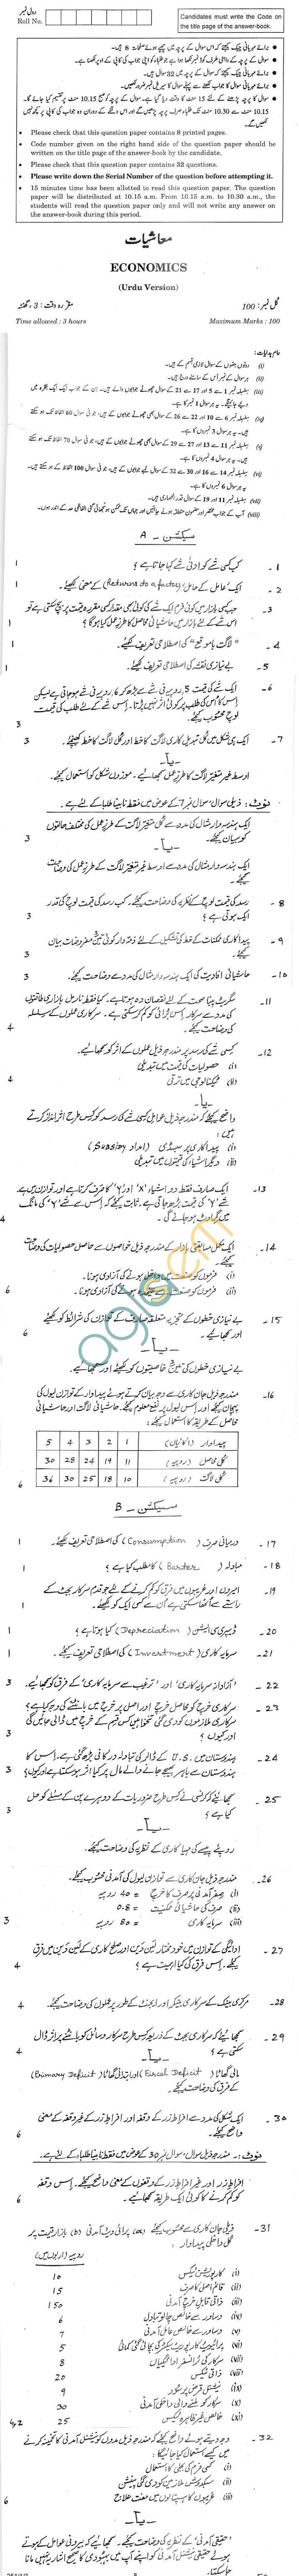 CBSE Compartment Exam 2013 Class XII Question Paper - Economics Urdu Version